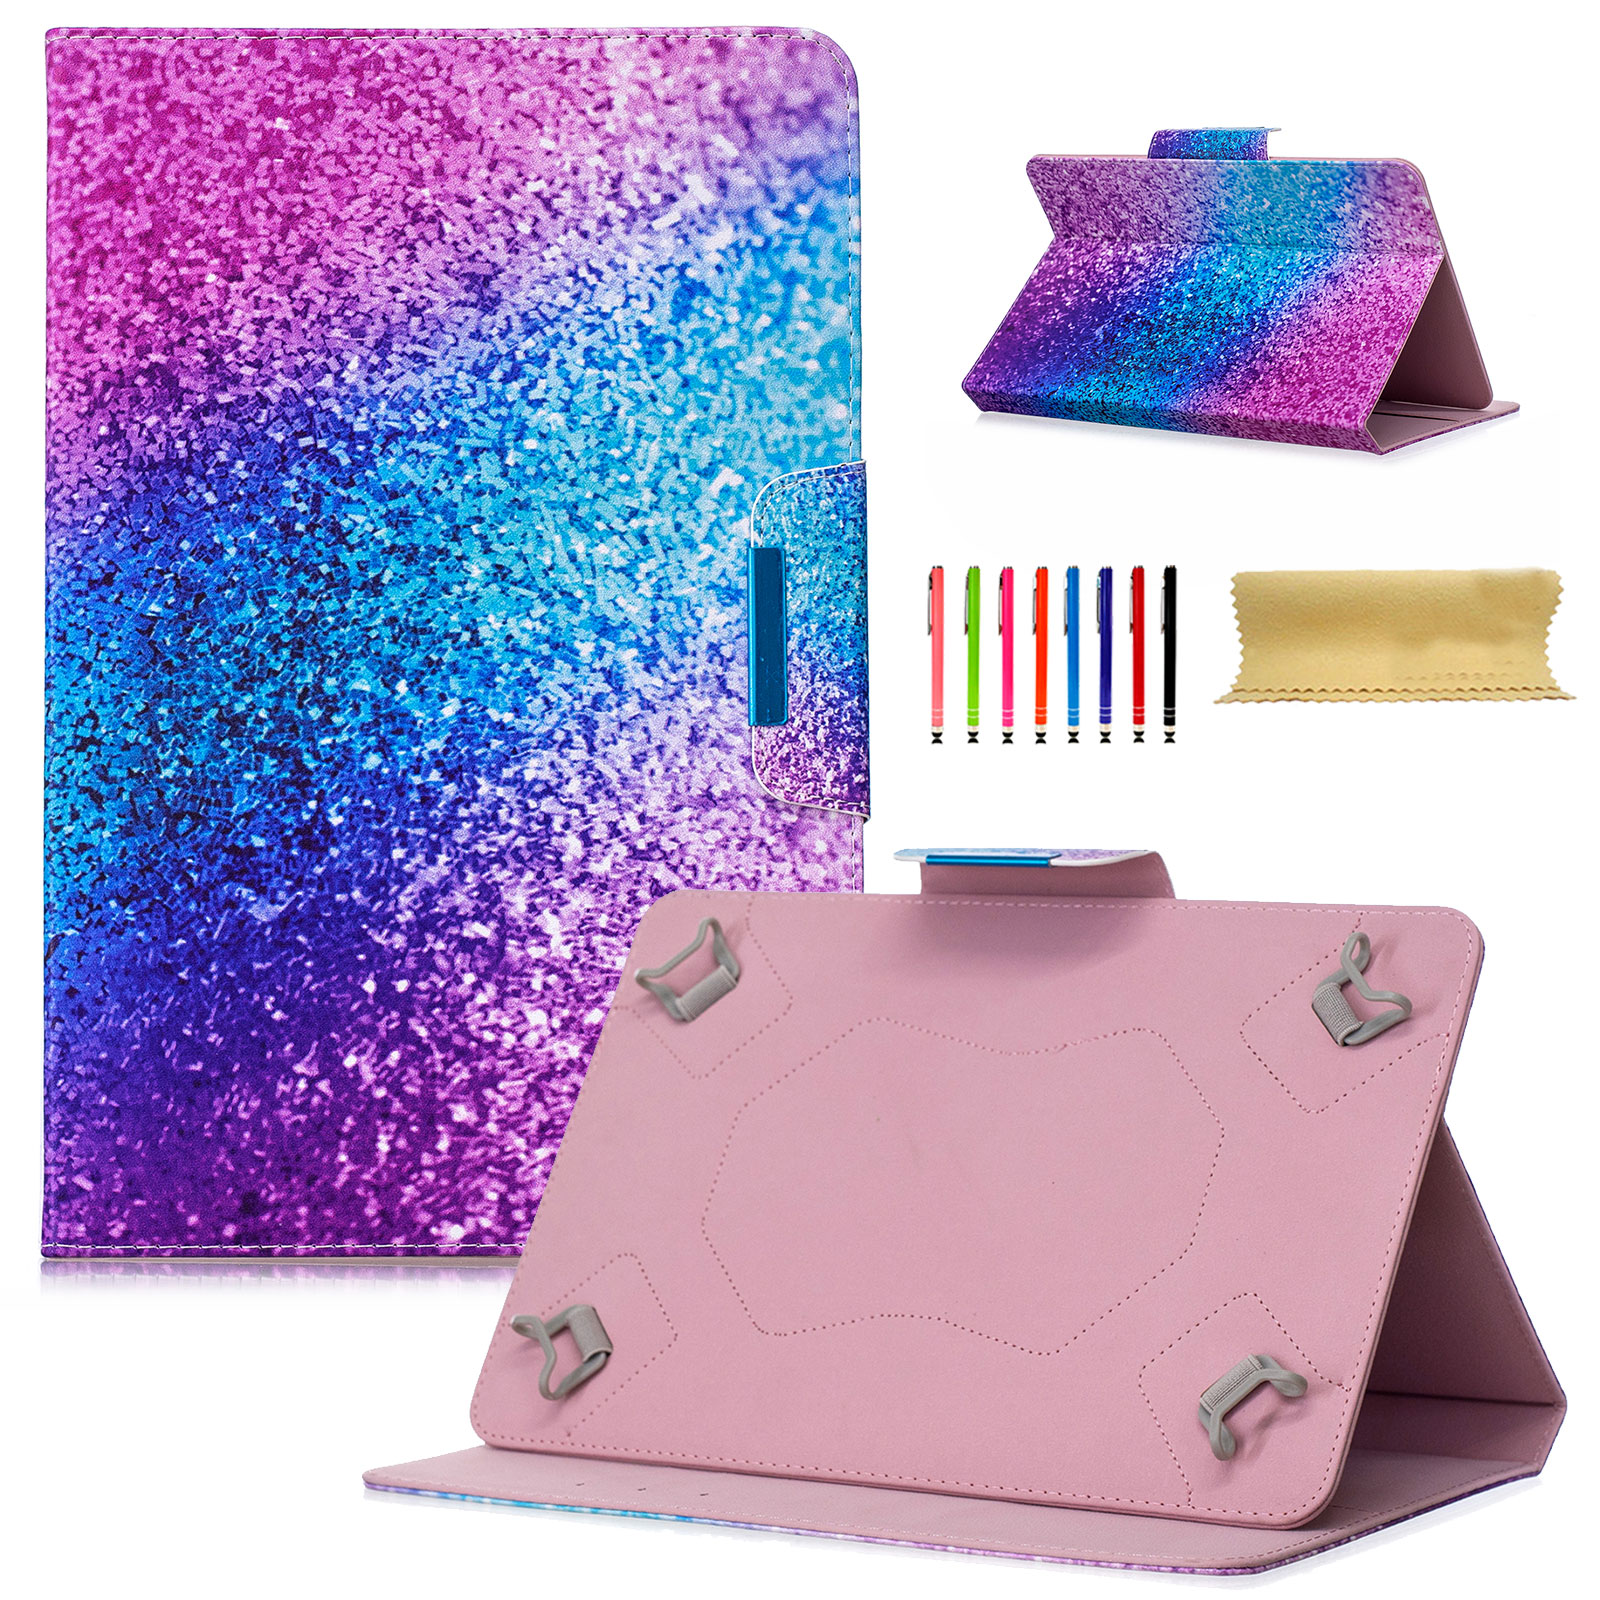 "Goodest Universal 7 Inch Tablet Case, PU Leather Stand Magnetic Wallet Cover for Samsung Galaxy Tab, Amazon Kindle Fire, Huawei, RCA, ASUS, Google and More 6.""-7.5"" Tablet, Glitter Sand"